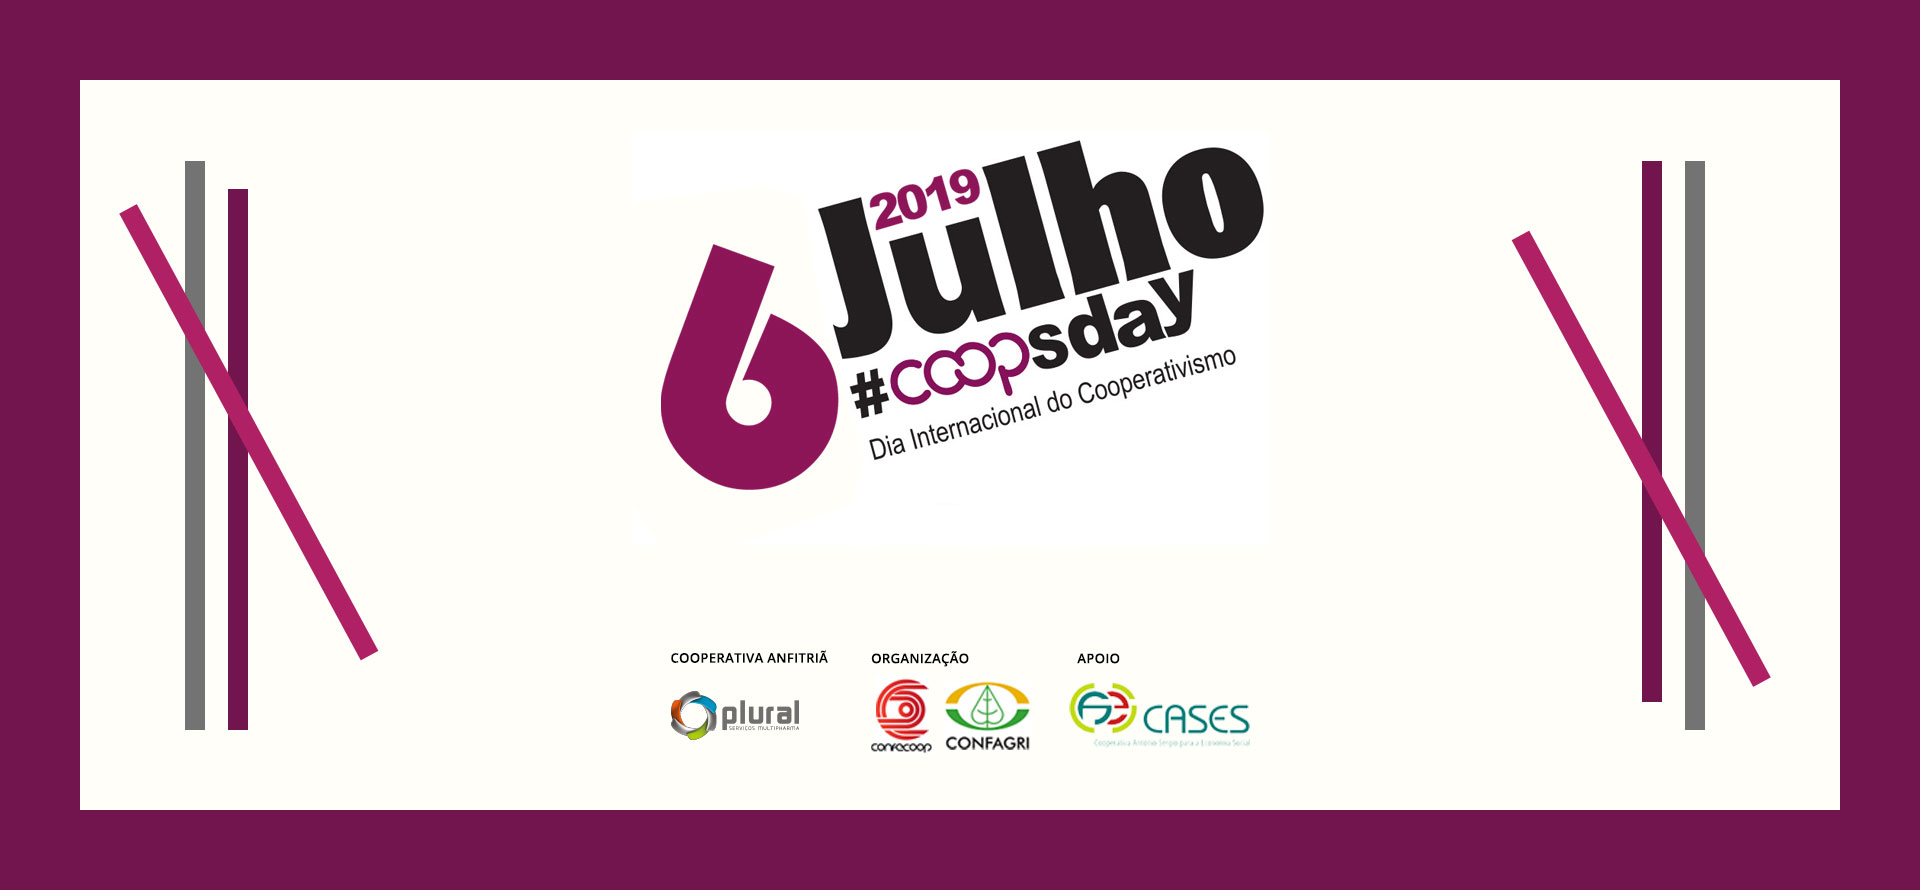 coopsday-dia internacional do cooperativismo-mini.jpg